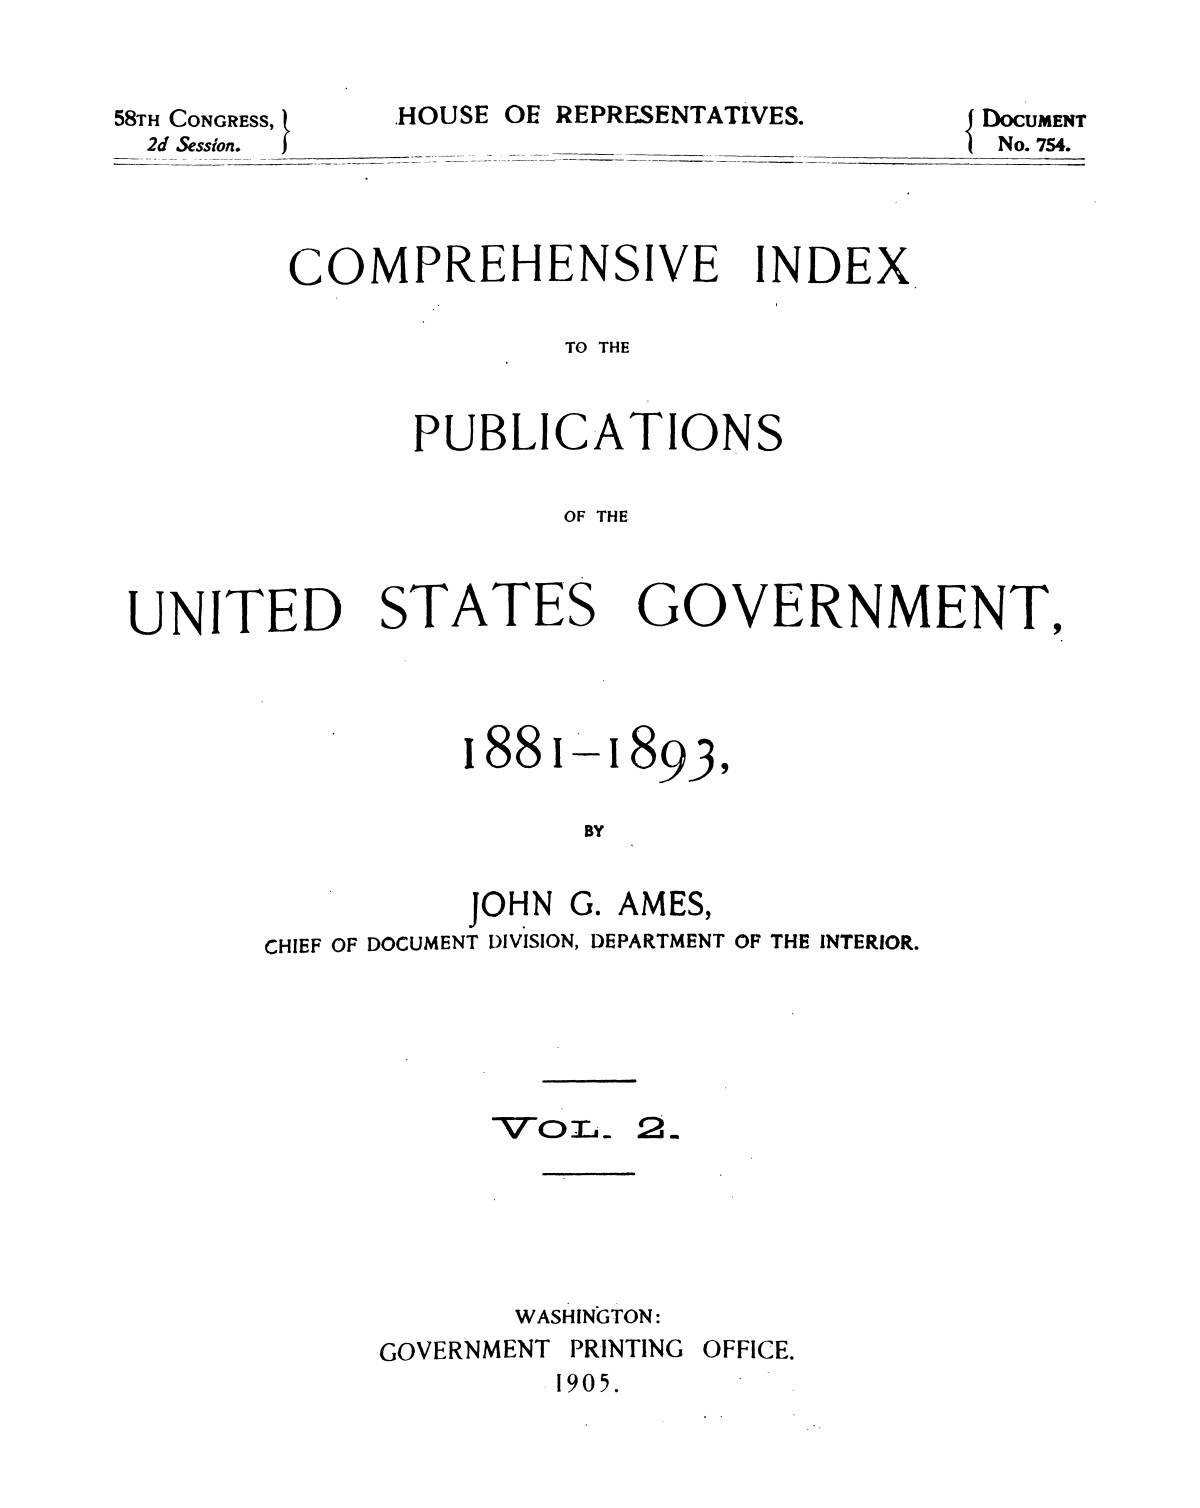 Comprehensive Index to the Publications of the United States Government, 1881-1893, Vol. 2.                                                                                                      TP